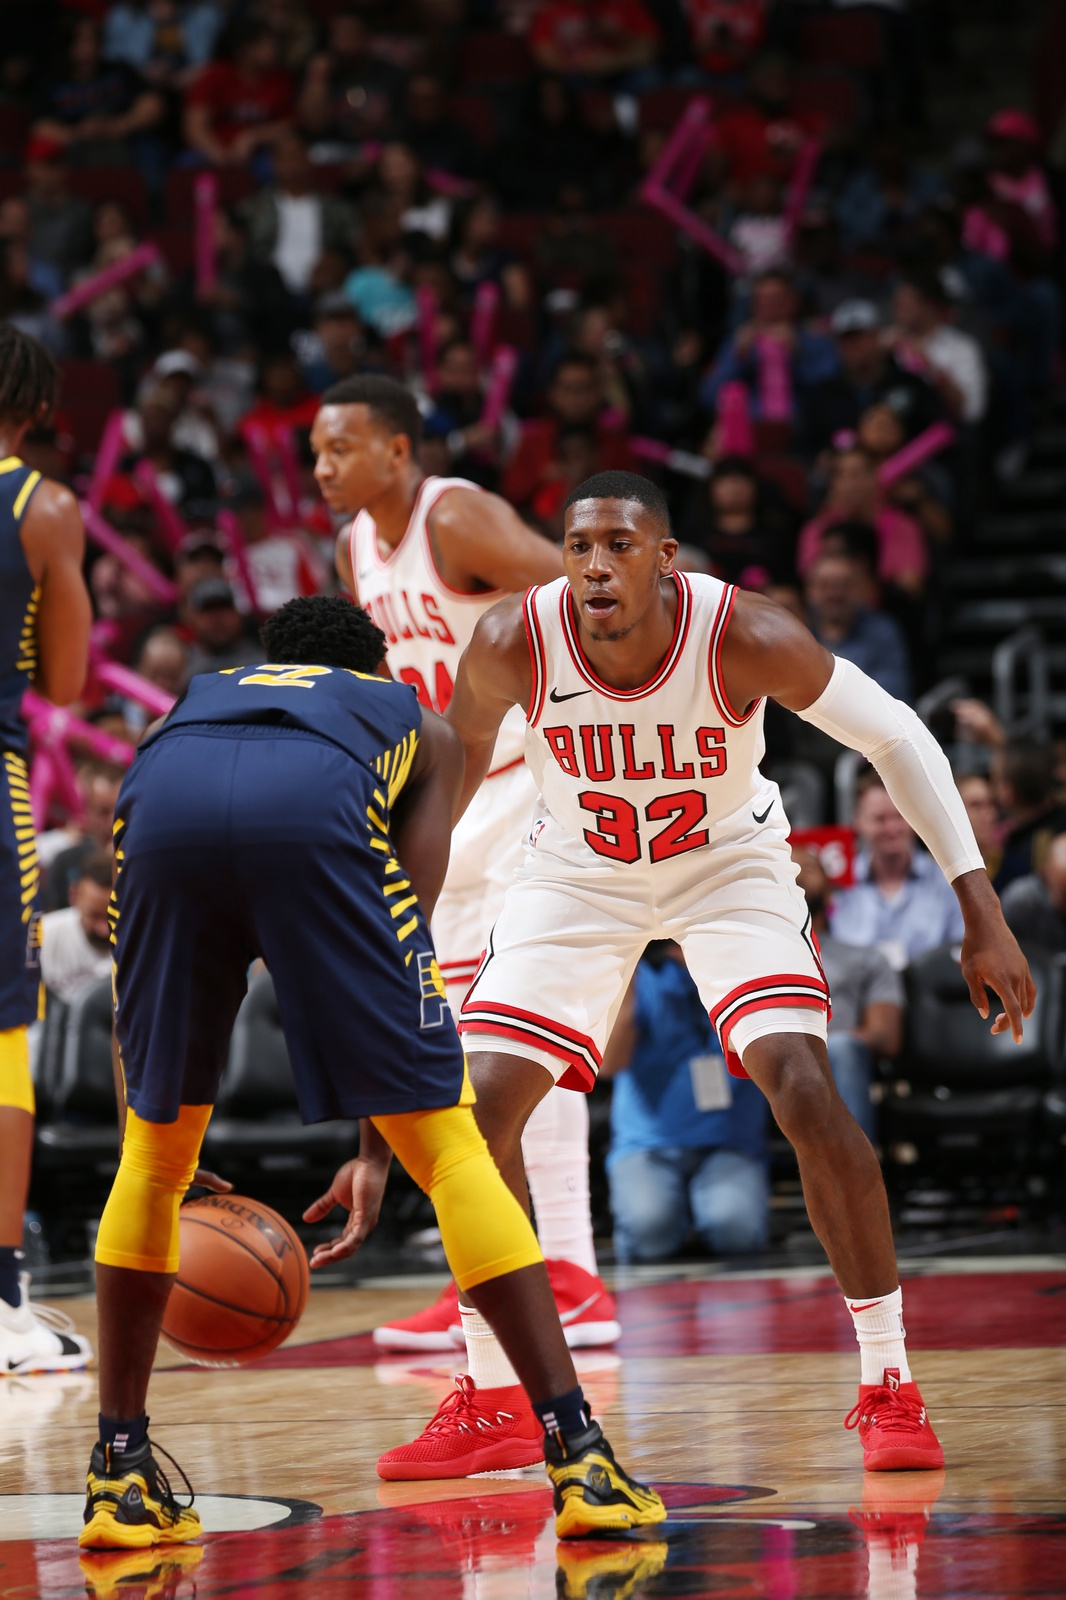 Victor Oladipo #4 of the Indiana Pacers drives against Kris Dunn #32 of the Chicago Bulls during a preseason game at the United Center on October 10, 2018 in Chicago, Illinois.